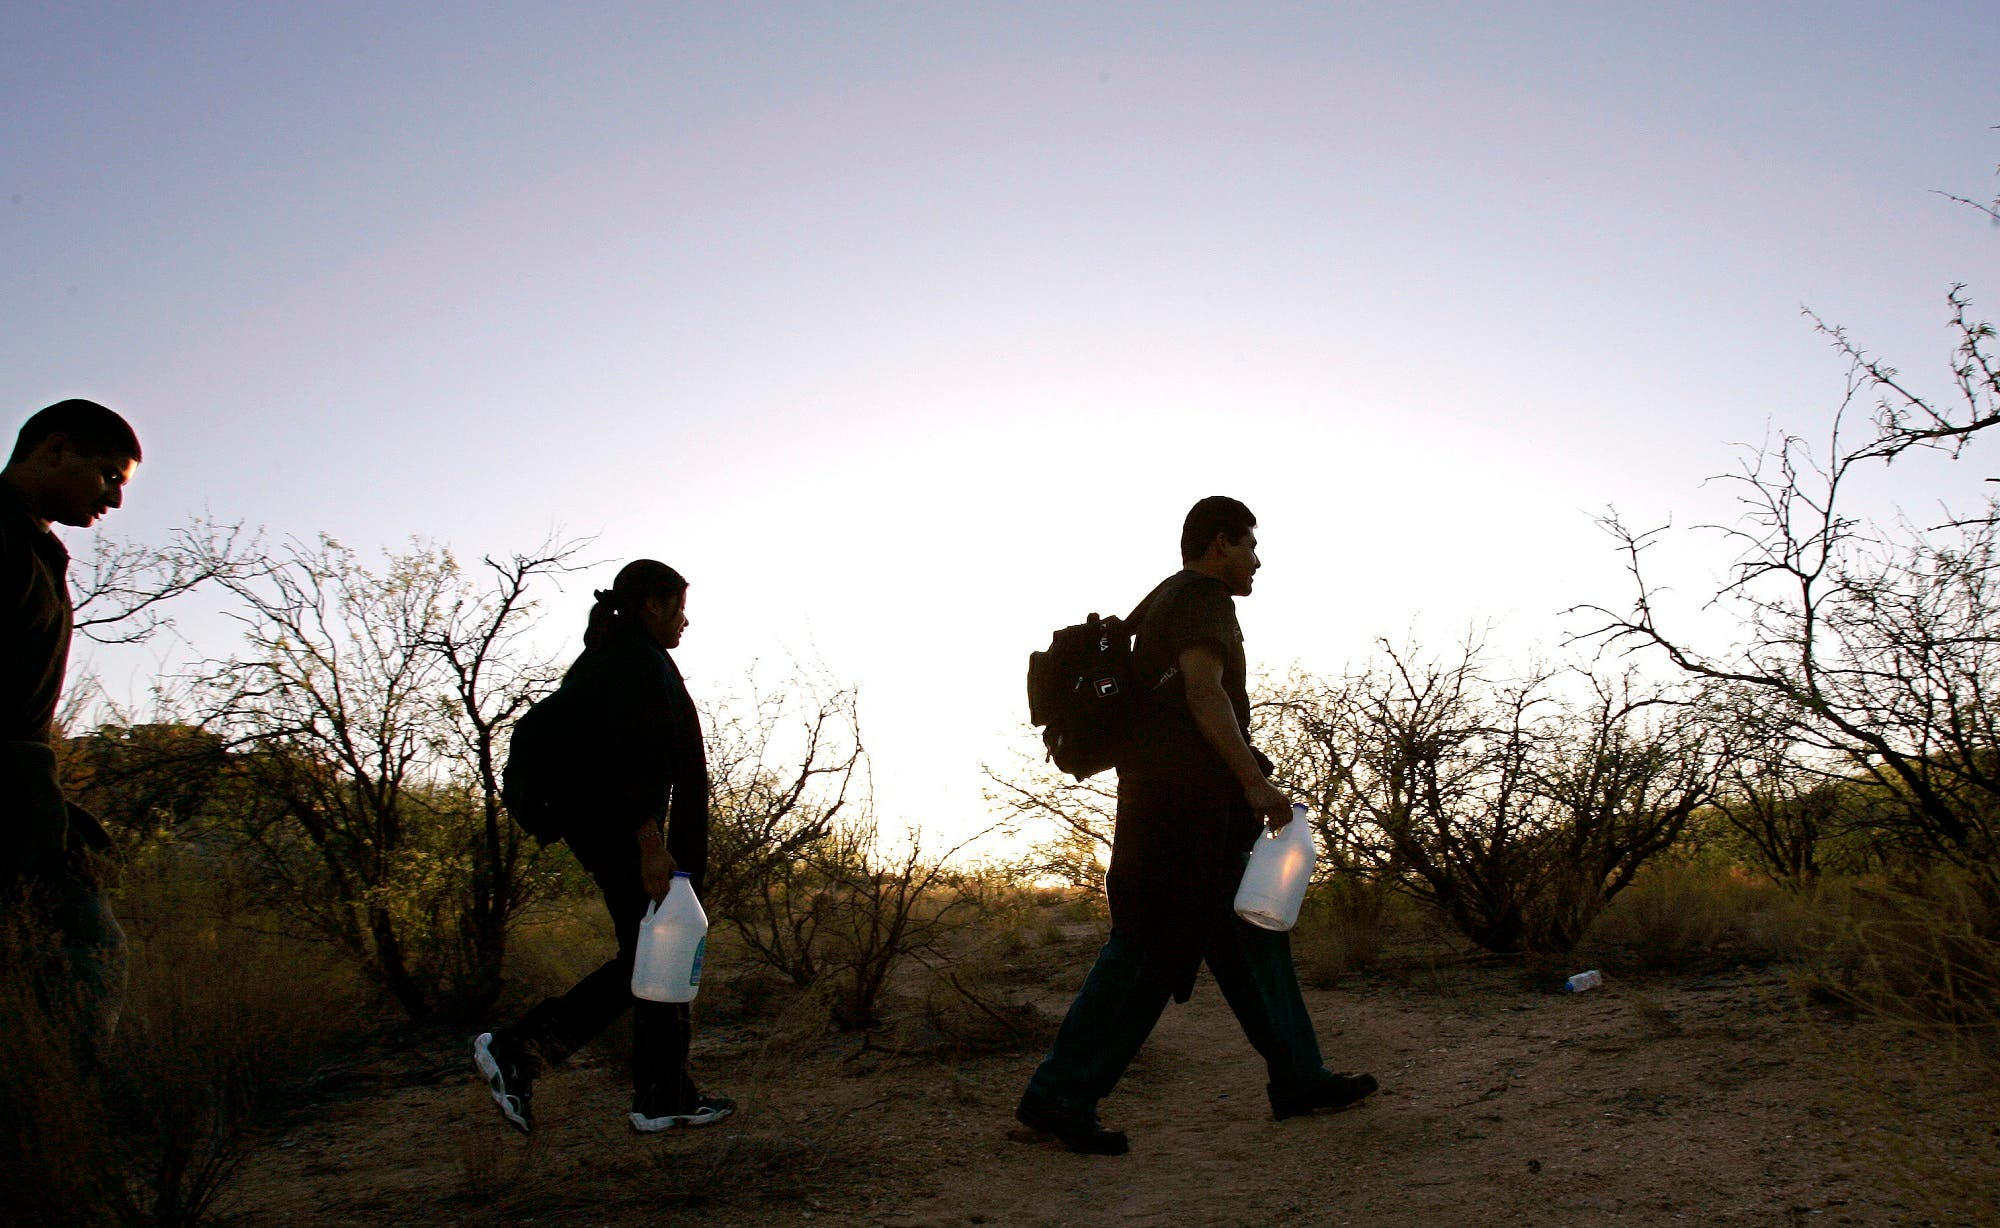 A group of migrants cross the desert between Sasabe, Mexico, and Sasabe, Arizona on April 25, 2006. (AP)